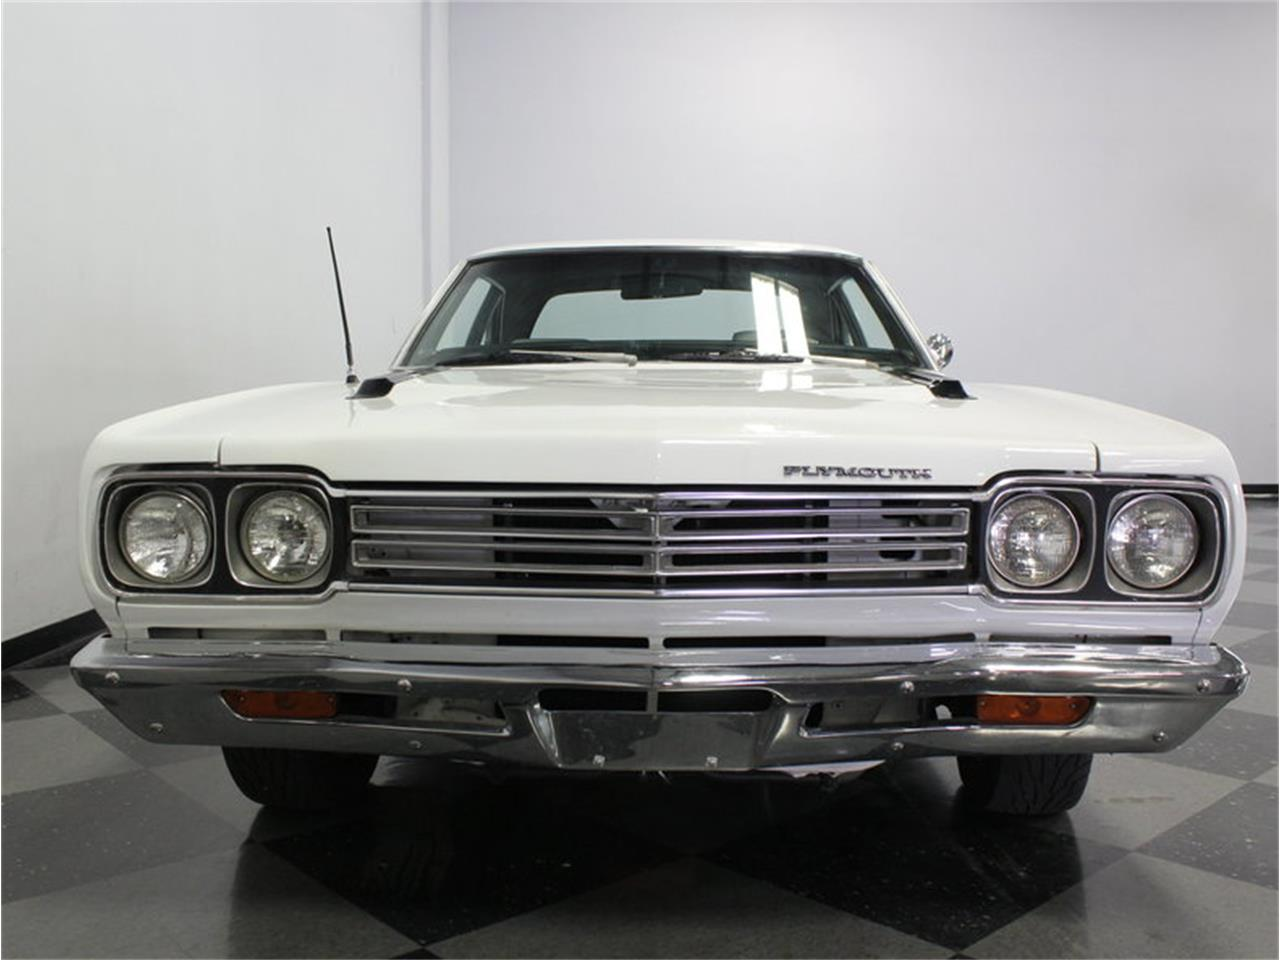 Large Picture of 1969 Plymouth Road Runner located in Ft Worth Texas - $33,995.00 Offered by Streetside Classics - Dallas / Fort Worth - FK5A